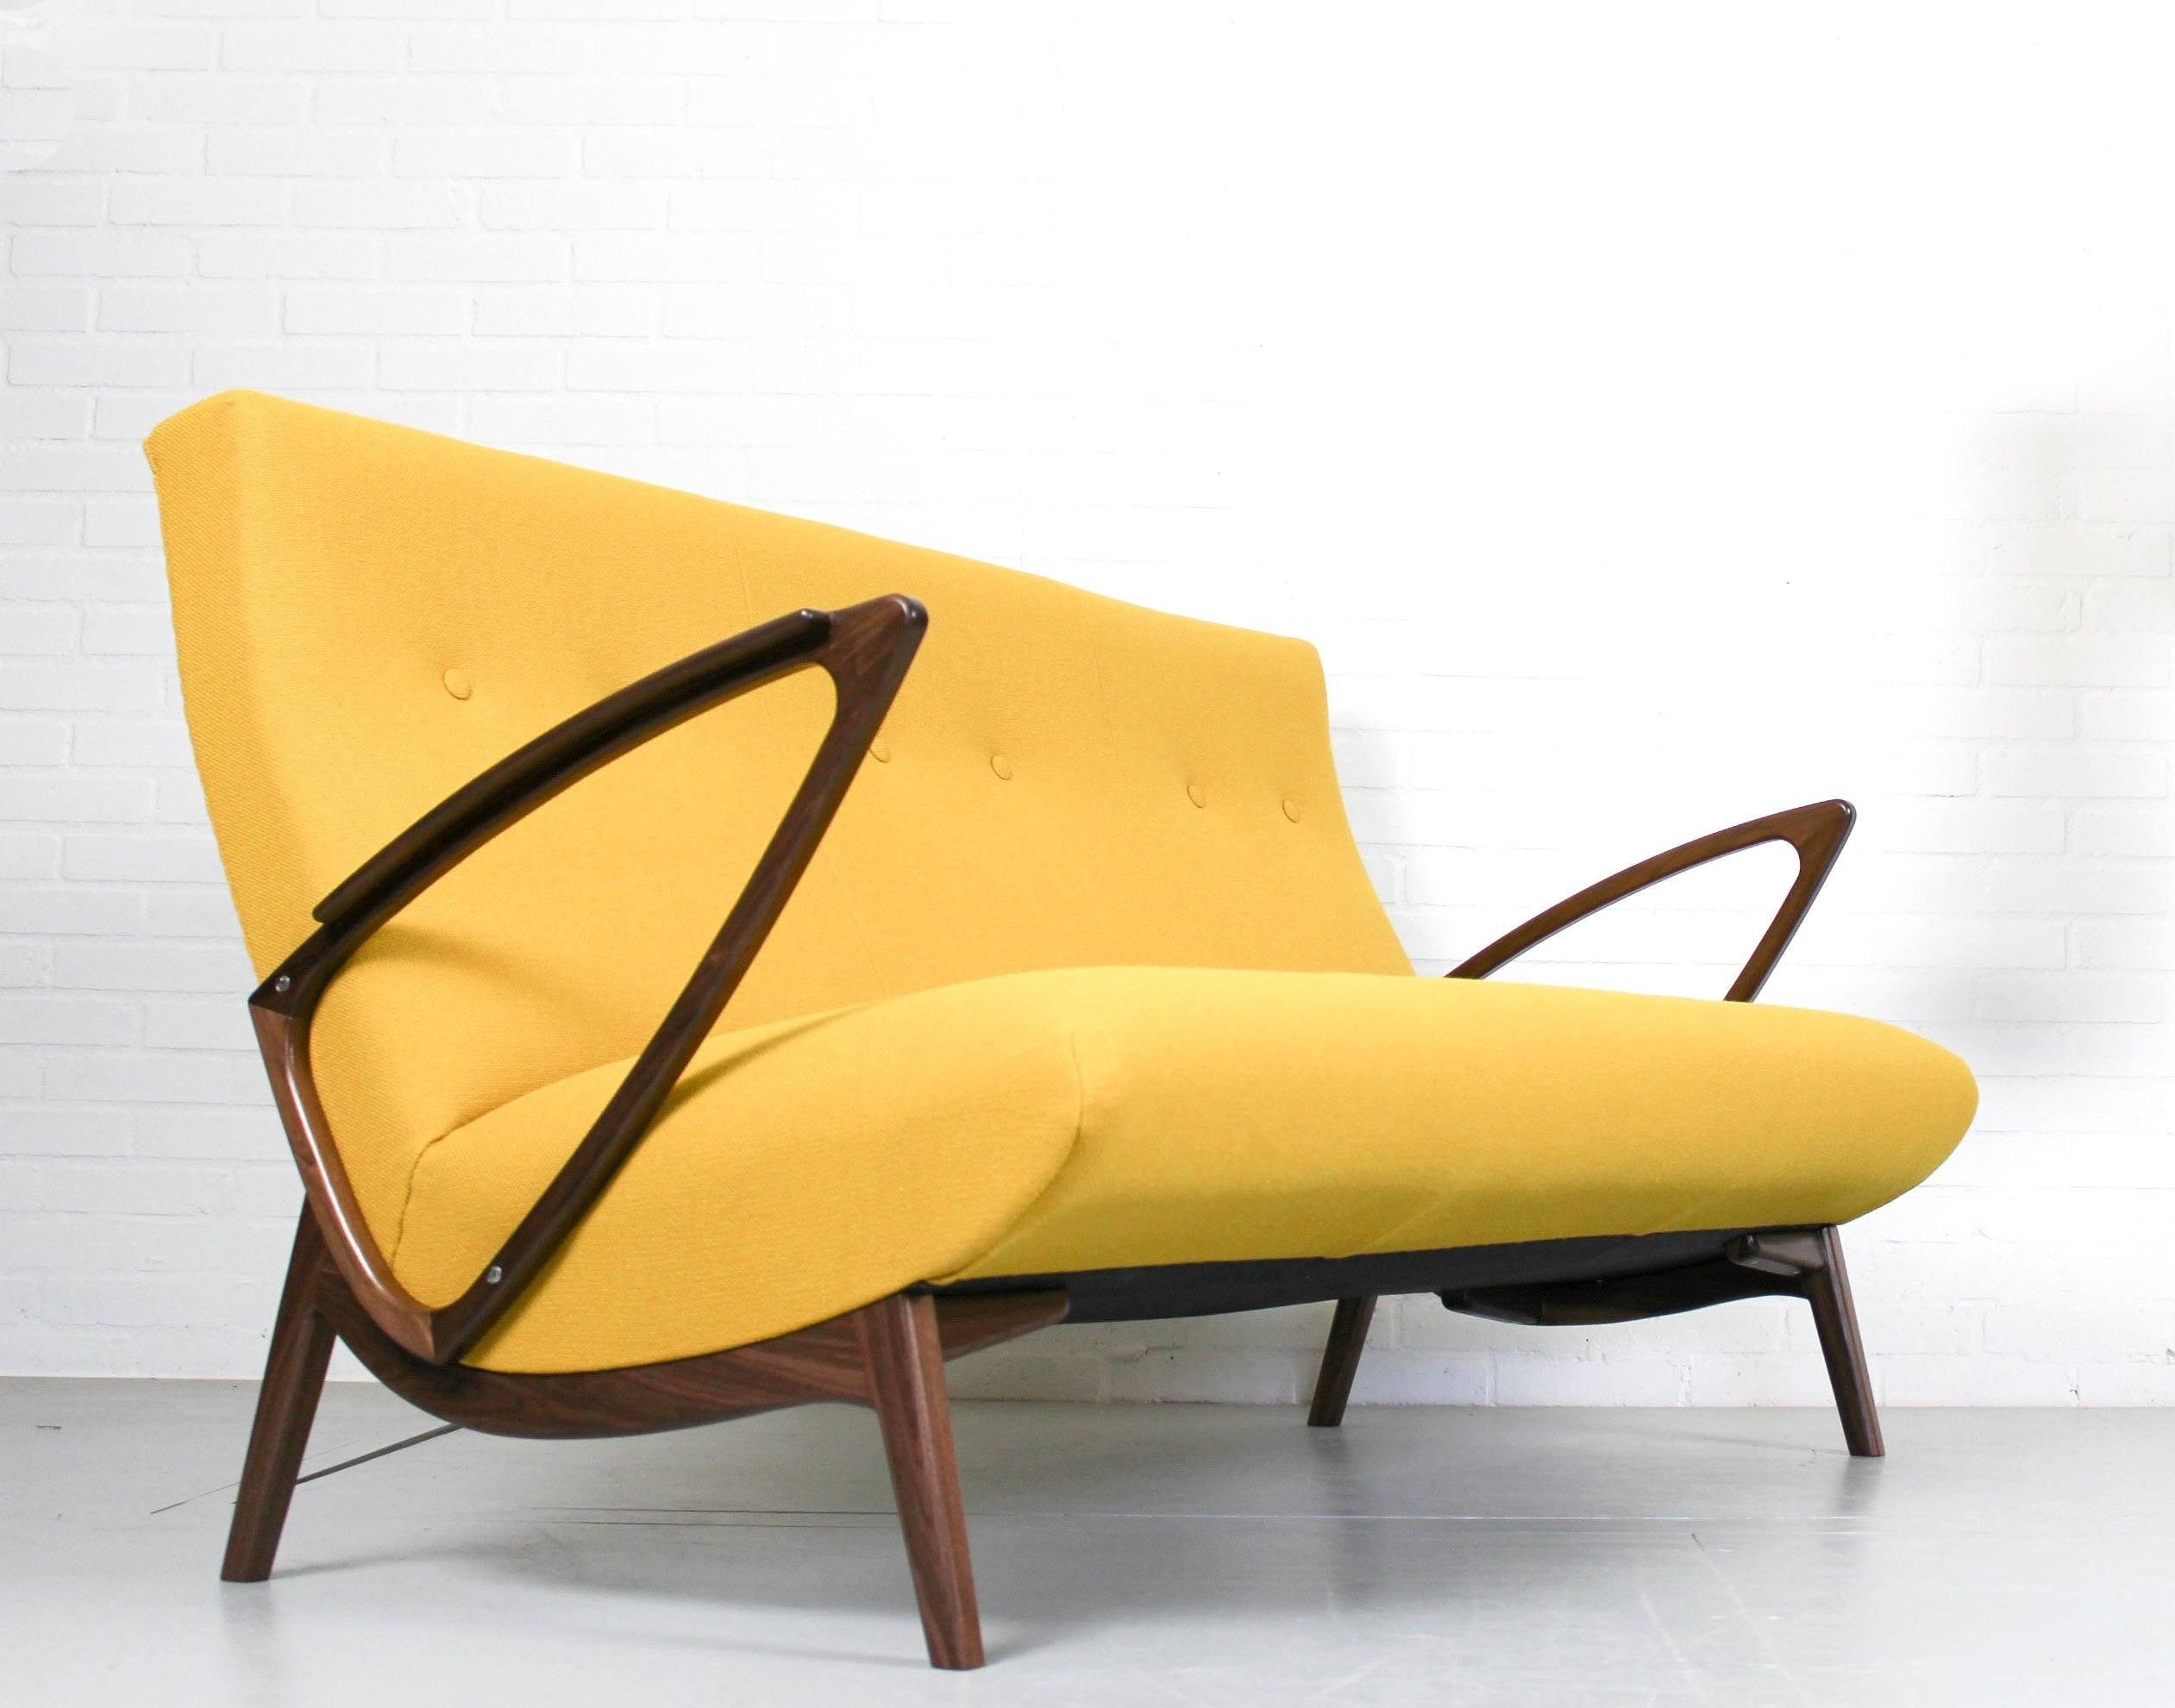 Midcentury Vintage Design Bank Sofa In Kvadrat Hallingdal Fabric, 1960s